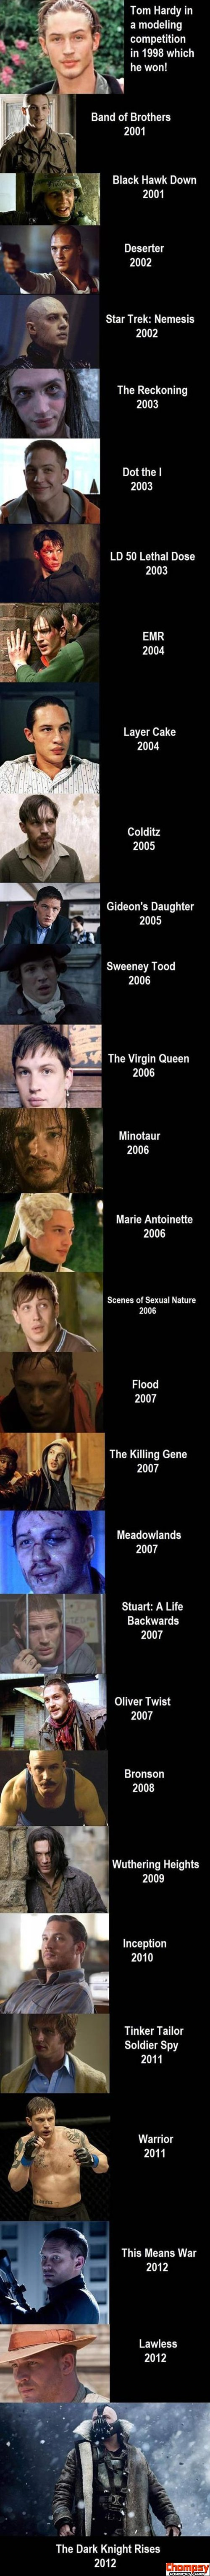 Funny Pictures The evolution of Tom Hardy